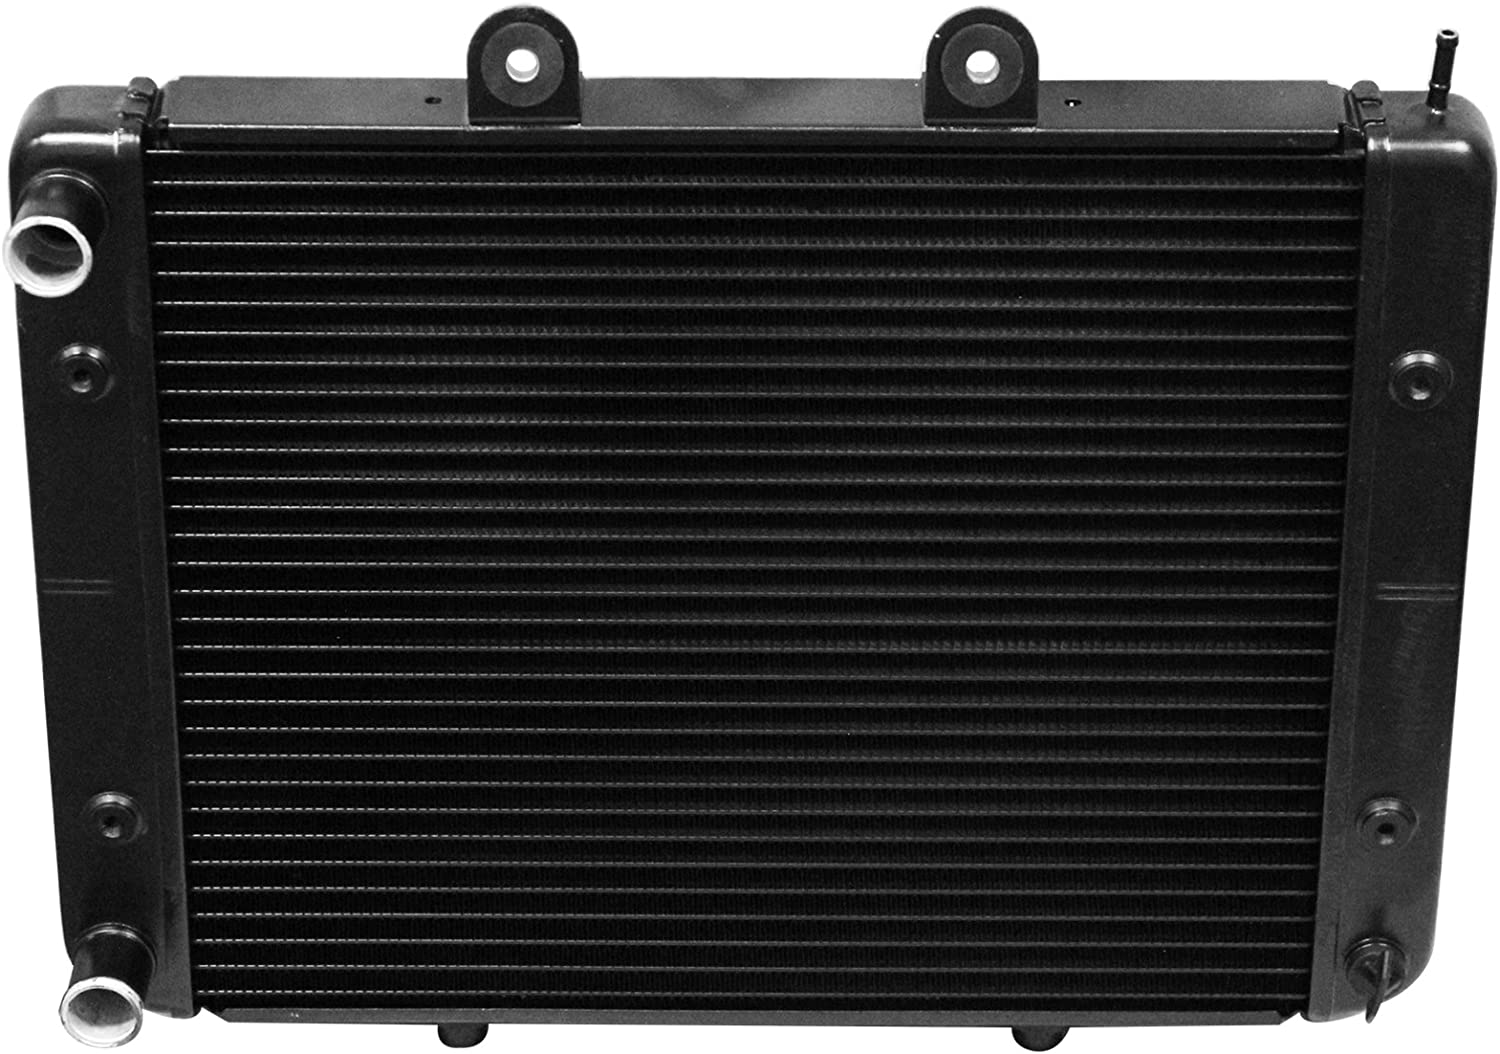 Caltric Radiator for Polaris Sportsman 800 Efi 2005 2006-2014